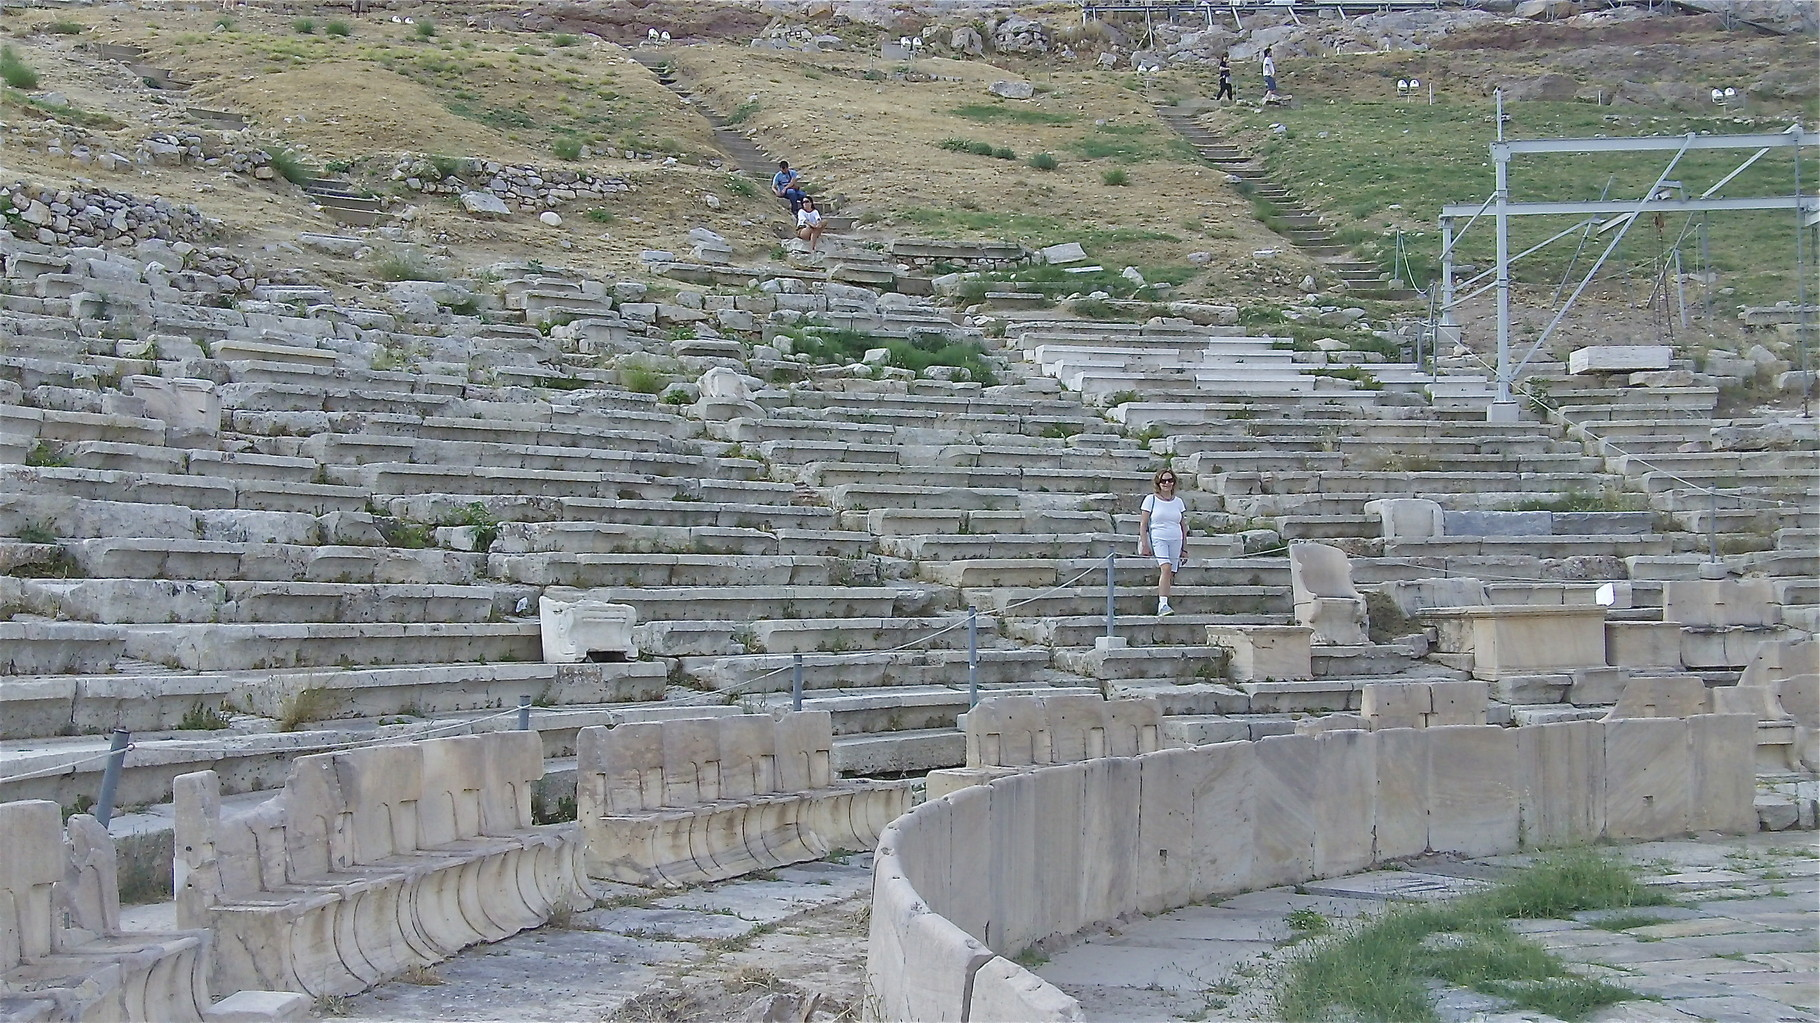 Lorraine in the Odeon of Pericles, near the theatre of Dionysus, base of the Acropolis